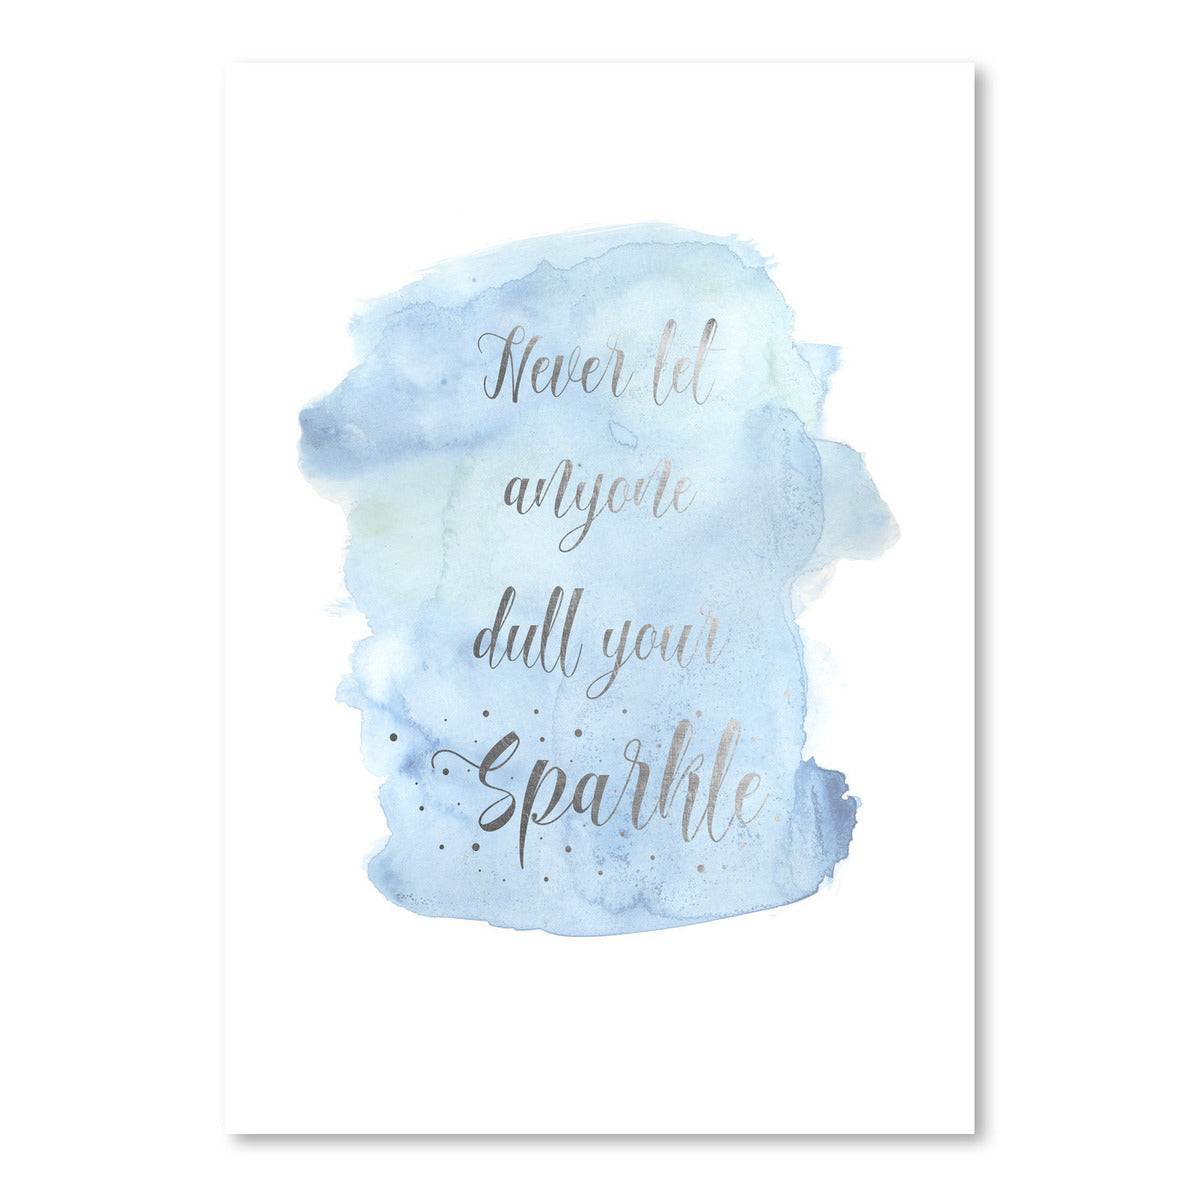 Never Let Anyone Dull Your Sparkle by Kate Shephard - Art Print - Americanflat